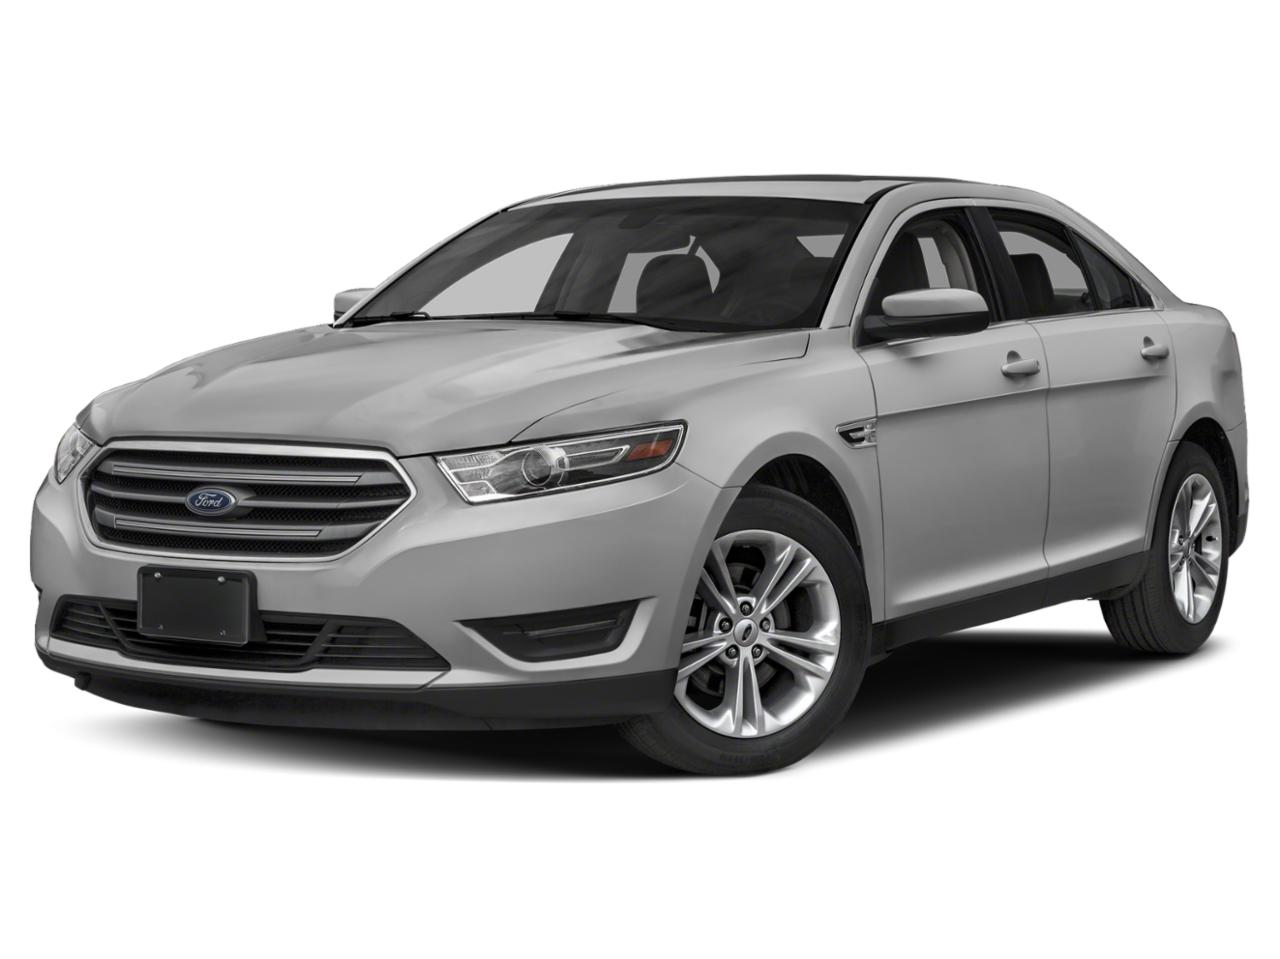 2019 Ford Taurus Vehicle Photo in Emporia, VA 23847